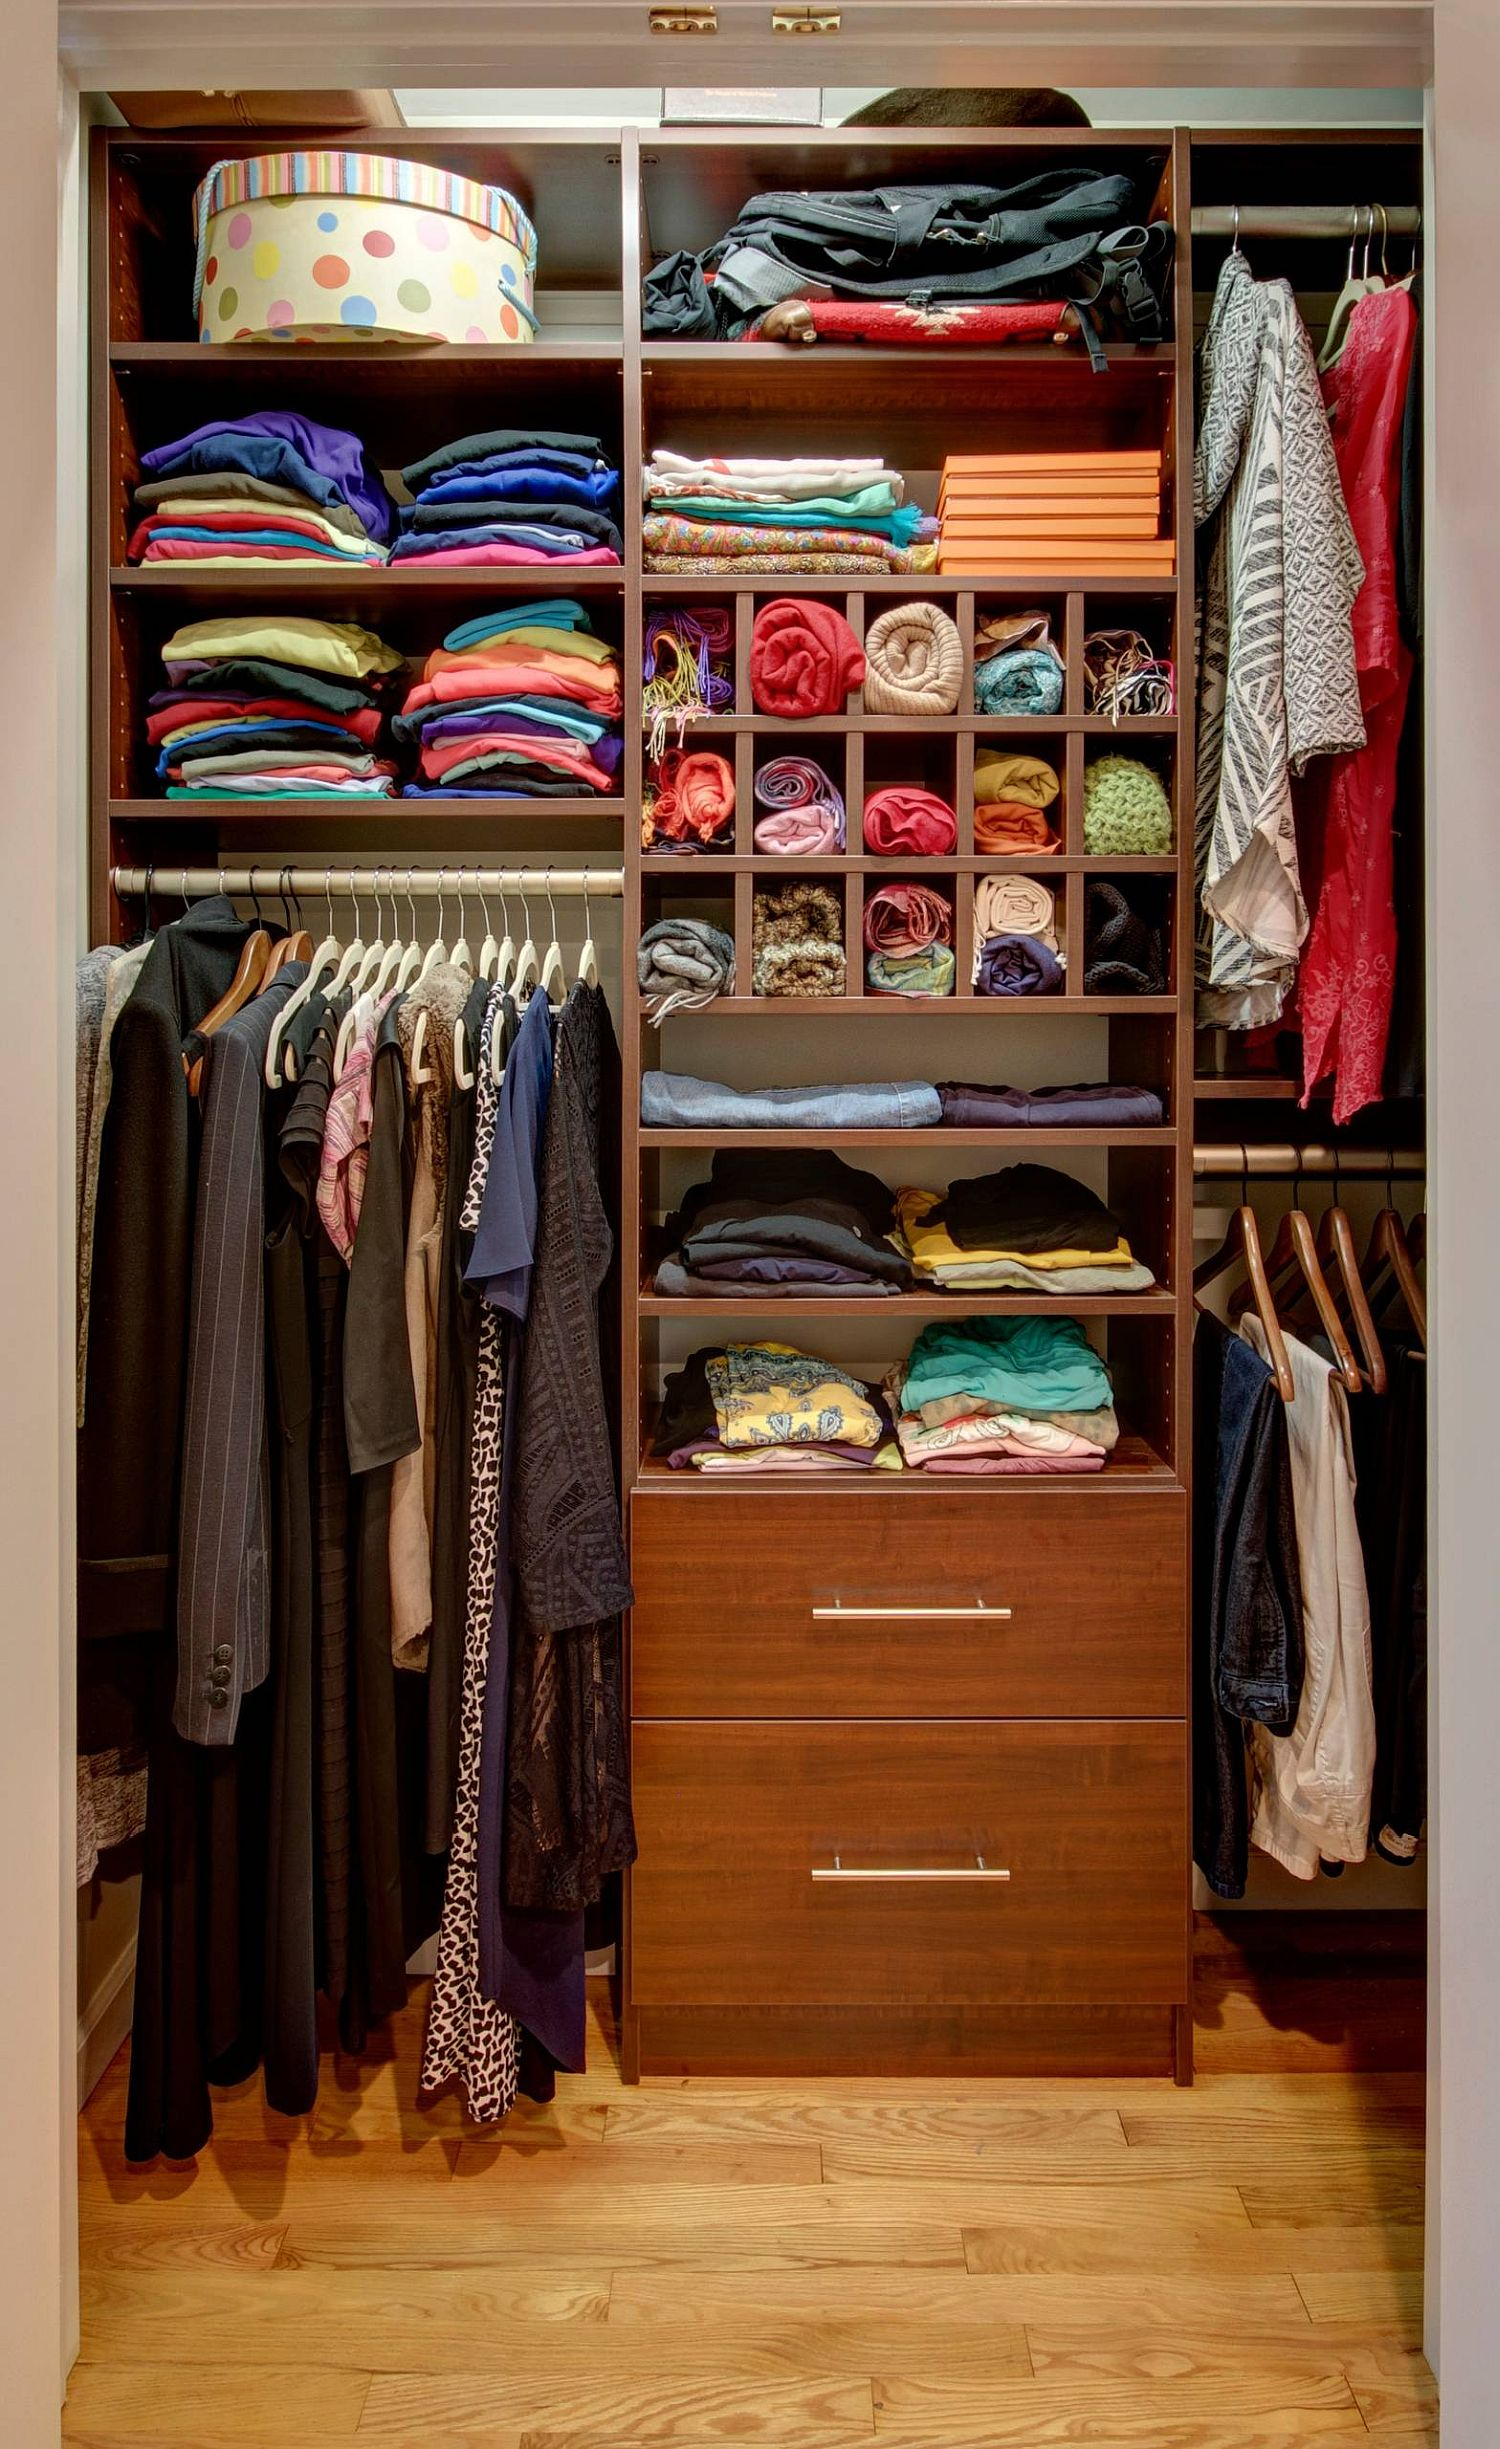 Making most of the small closet in a modern fashion